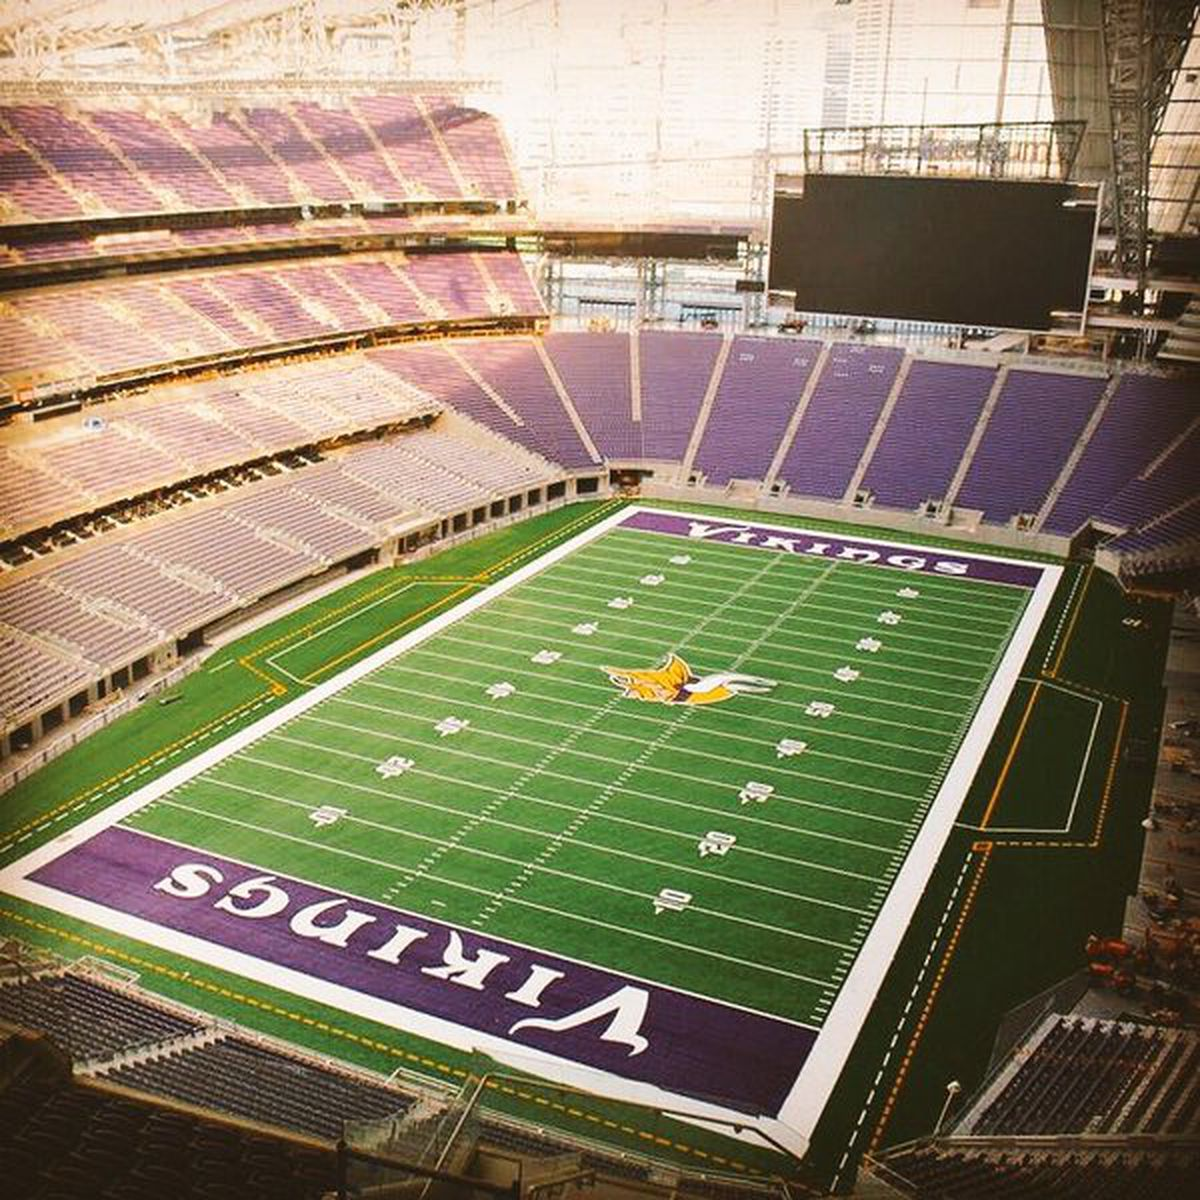 Exterior: A Great Picture Of The U.S. Bank Stadium Turf